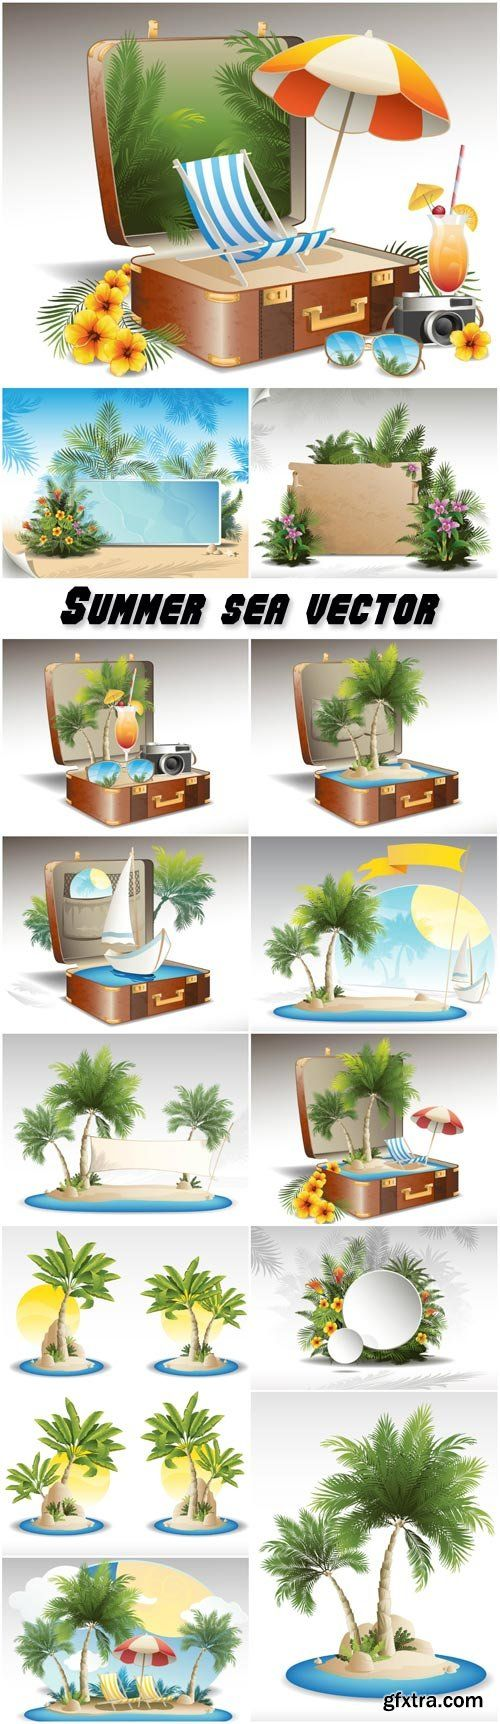 Animals » page 5 » Vector, Photoshop PSDAfter Effects, Tutorials, Template, 3D,